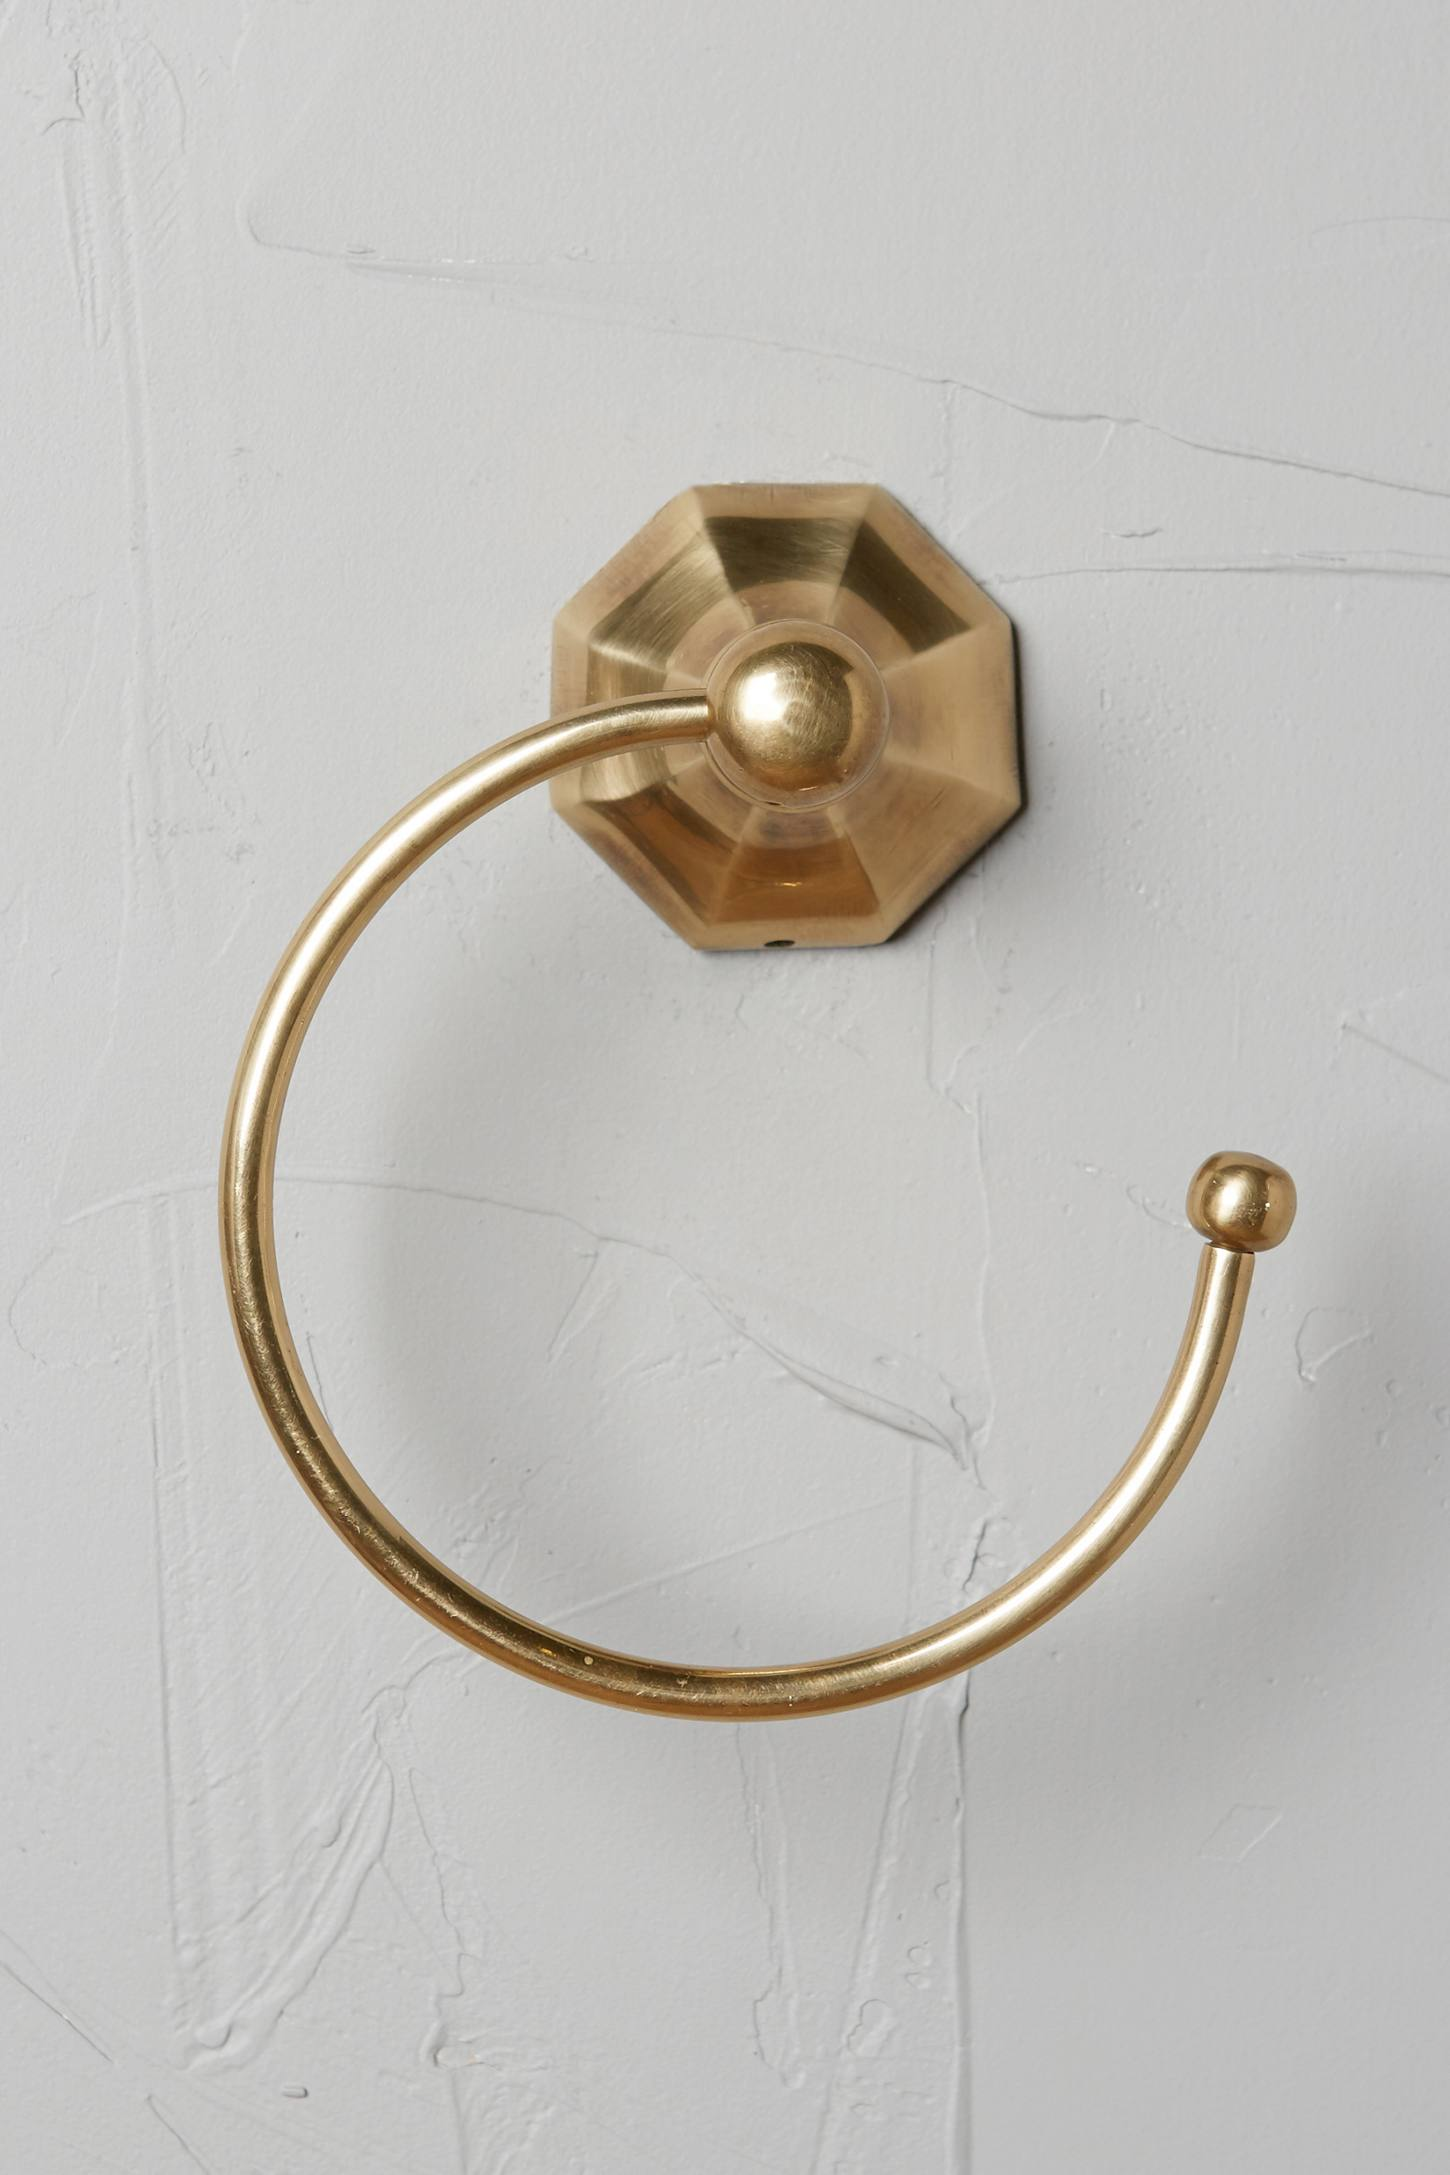 Slide View: 7: Brass Circlet Towel Bar